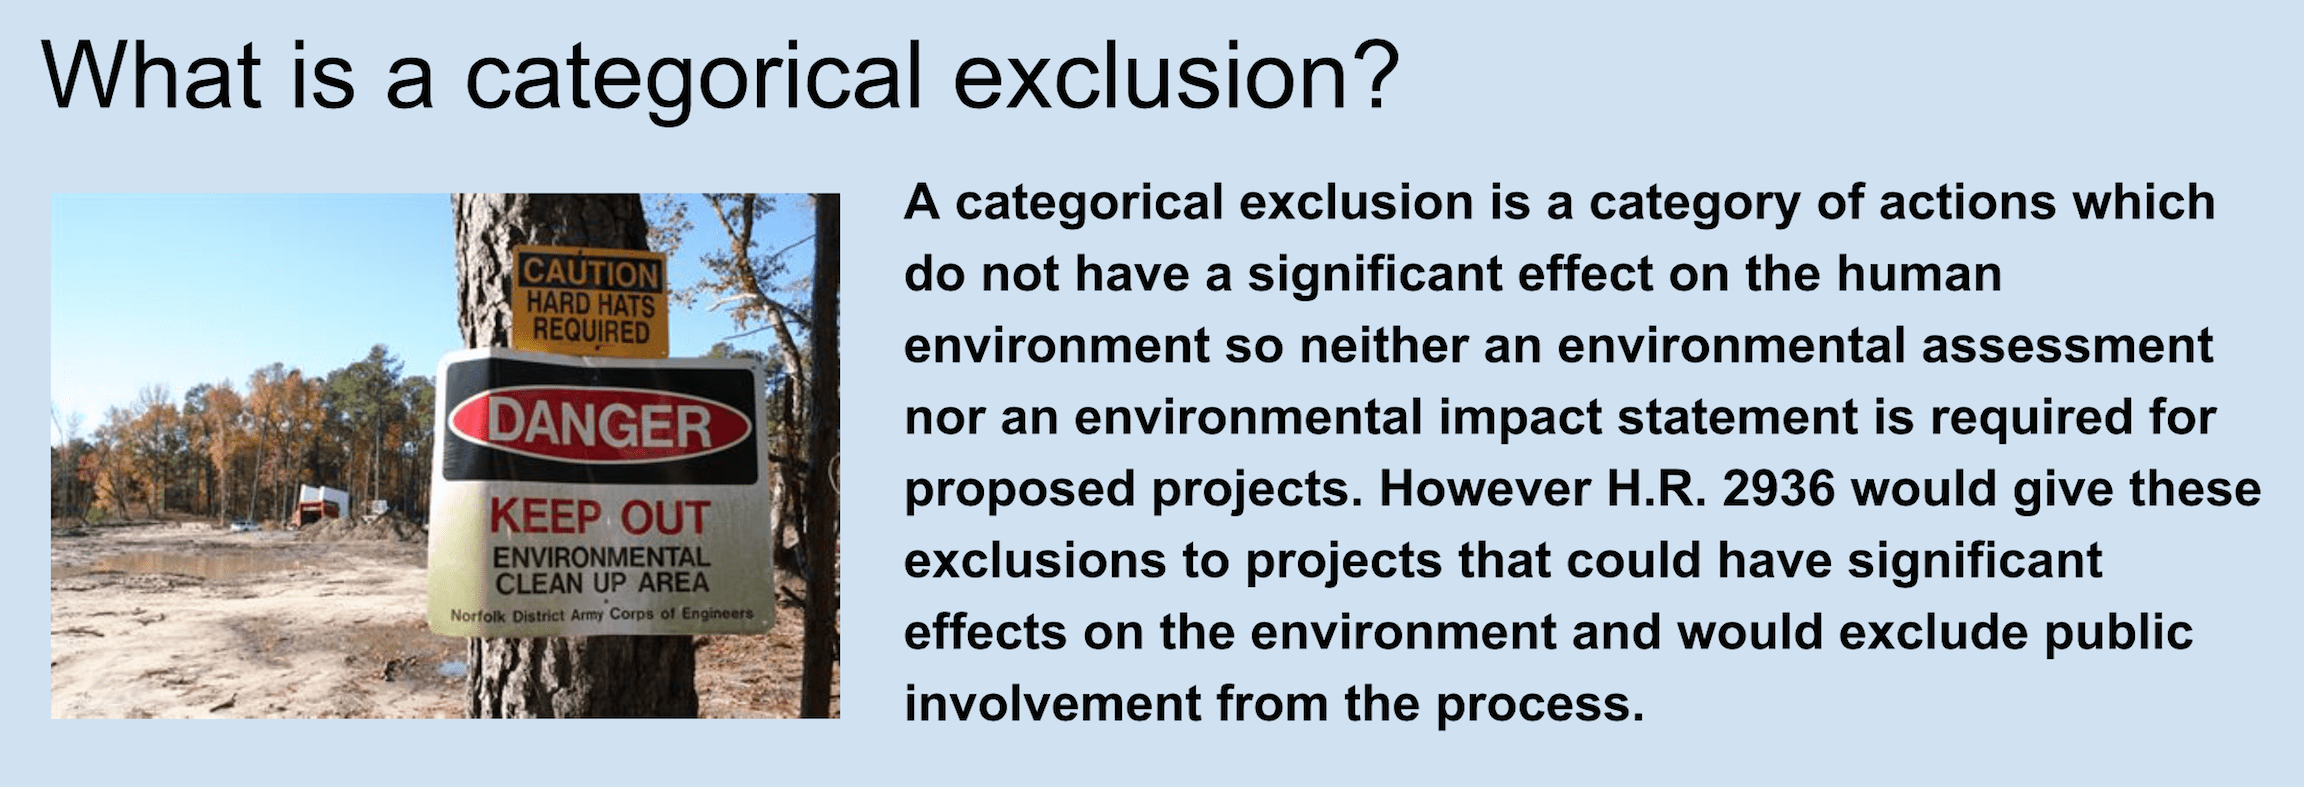 categorical-exclusion